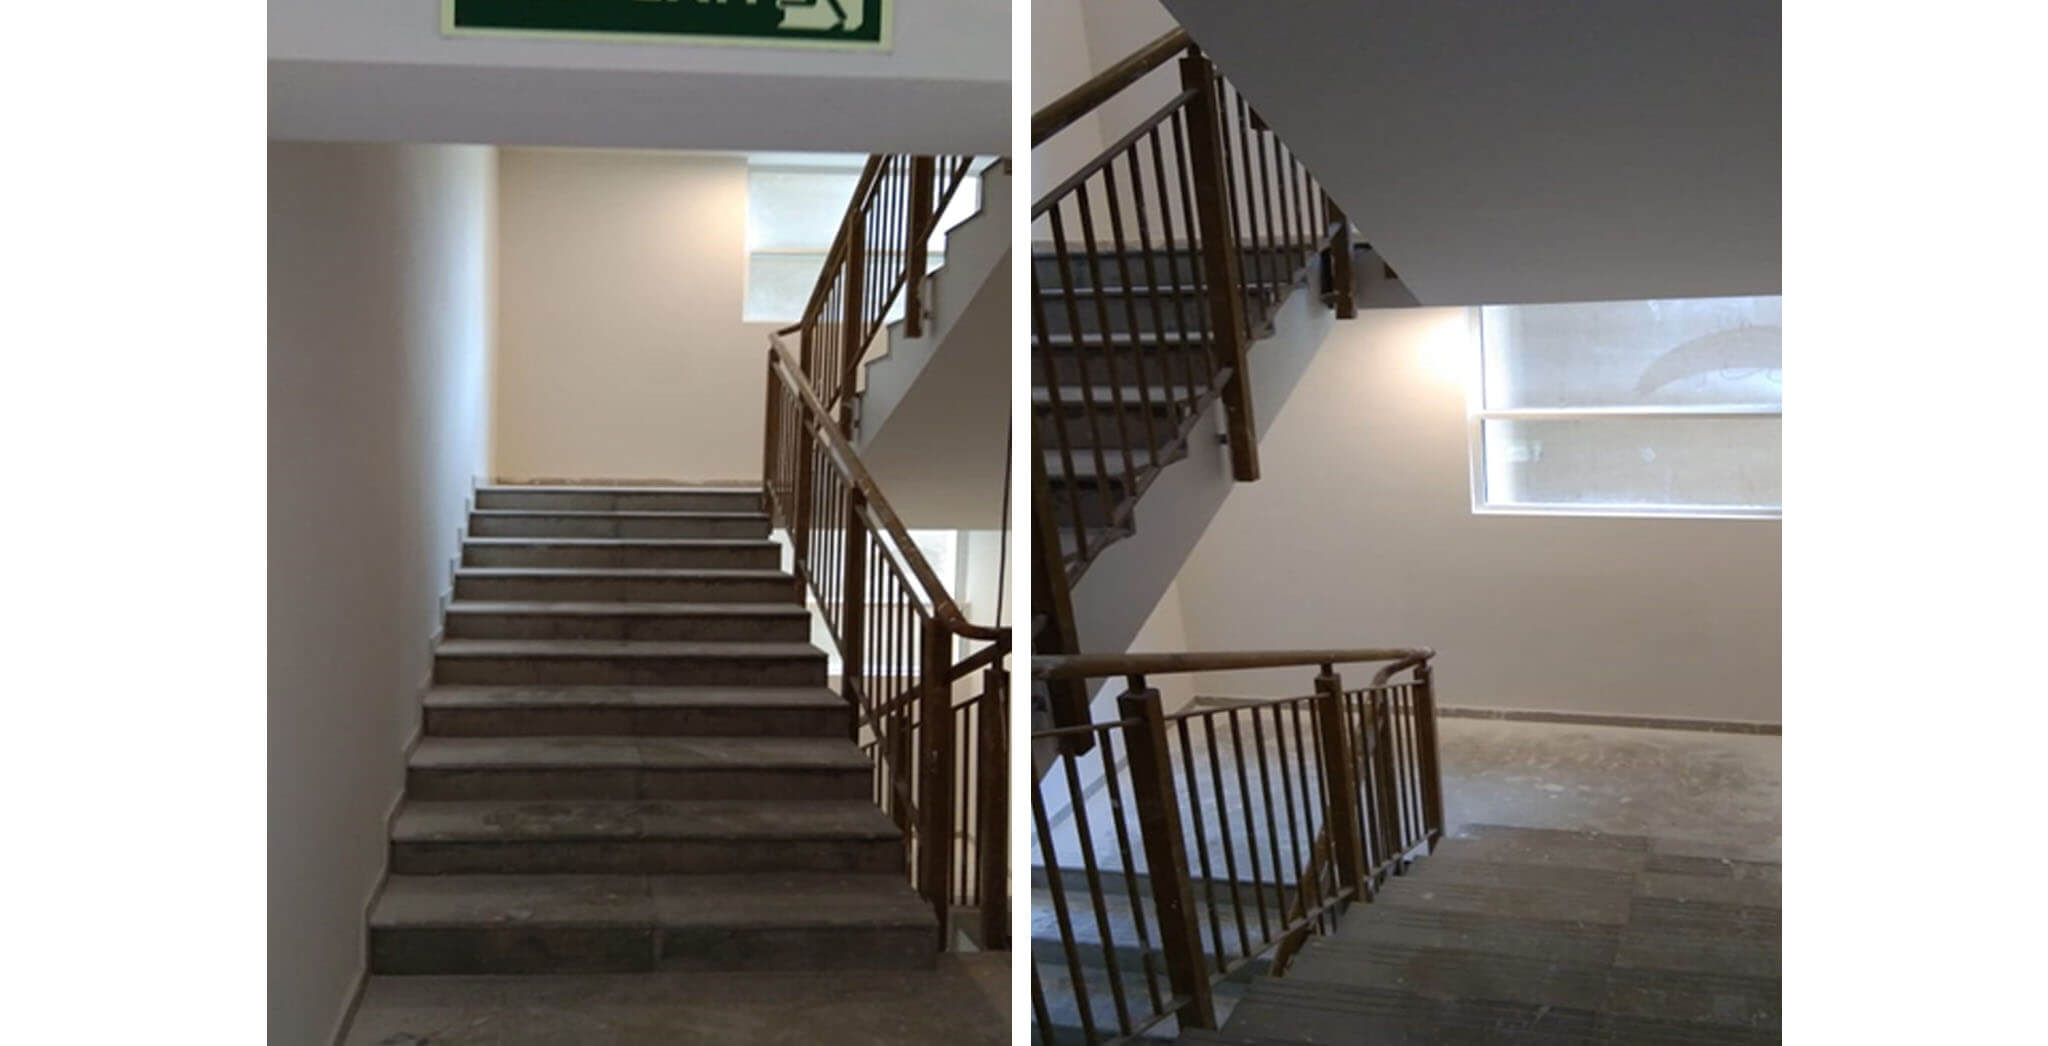 May 2020 - Deodar—C block: Staircase–Final coat painting in progress